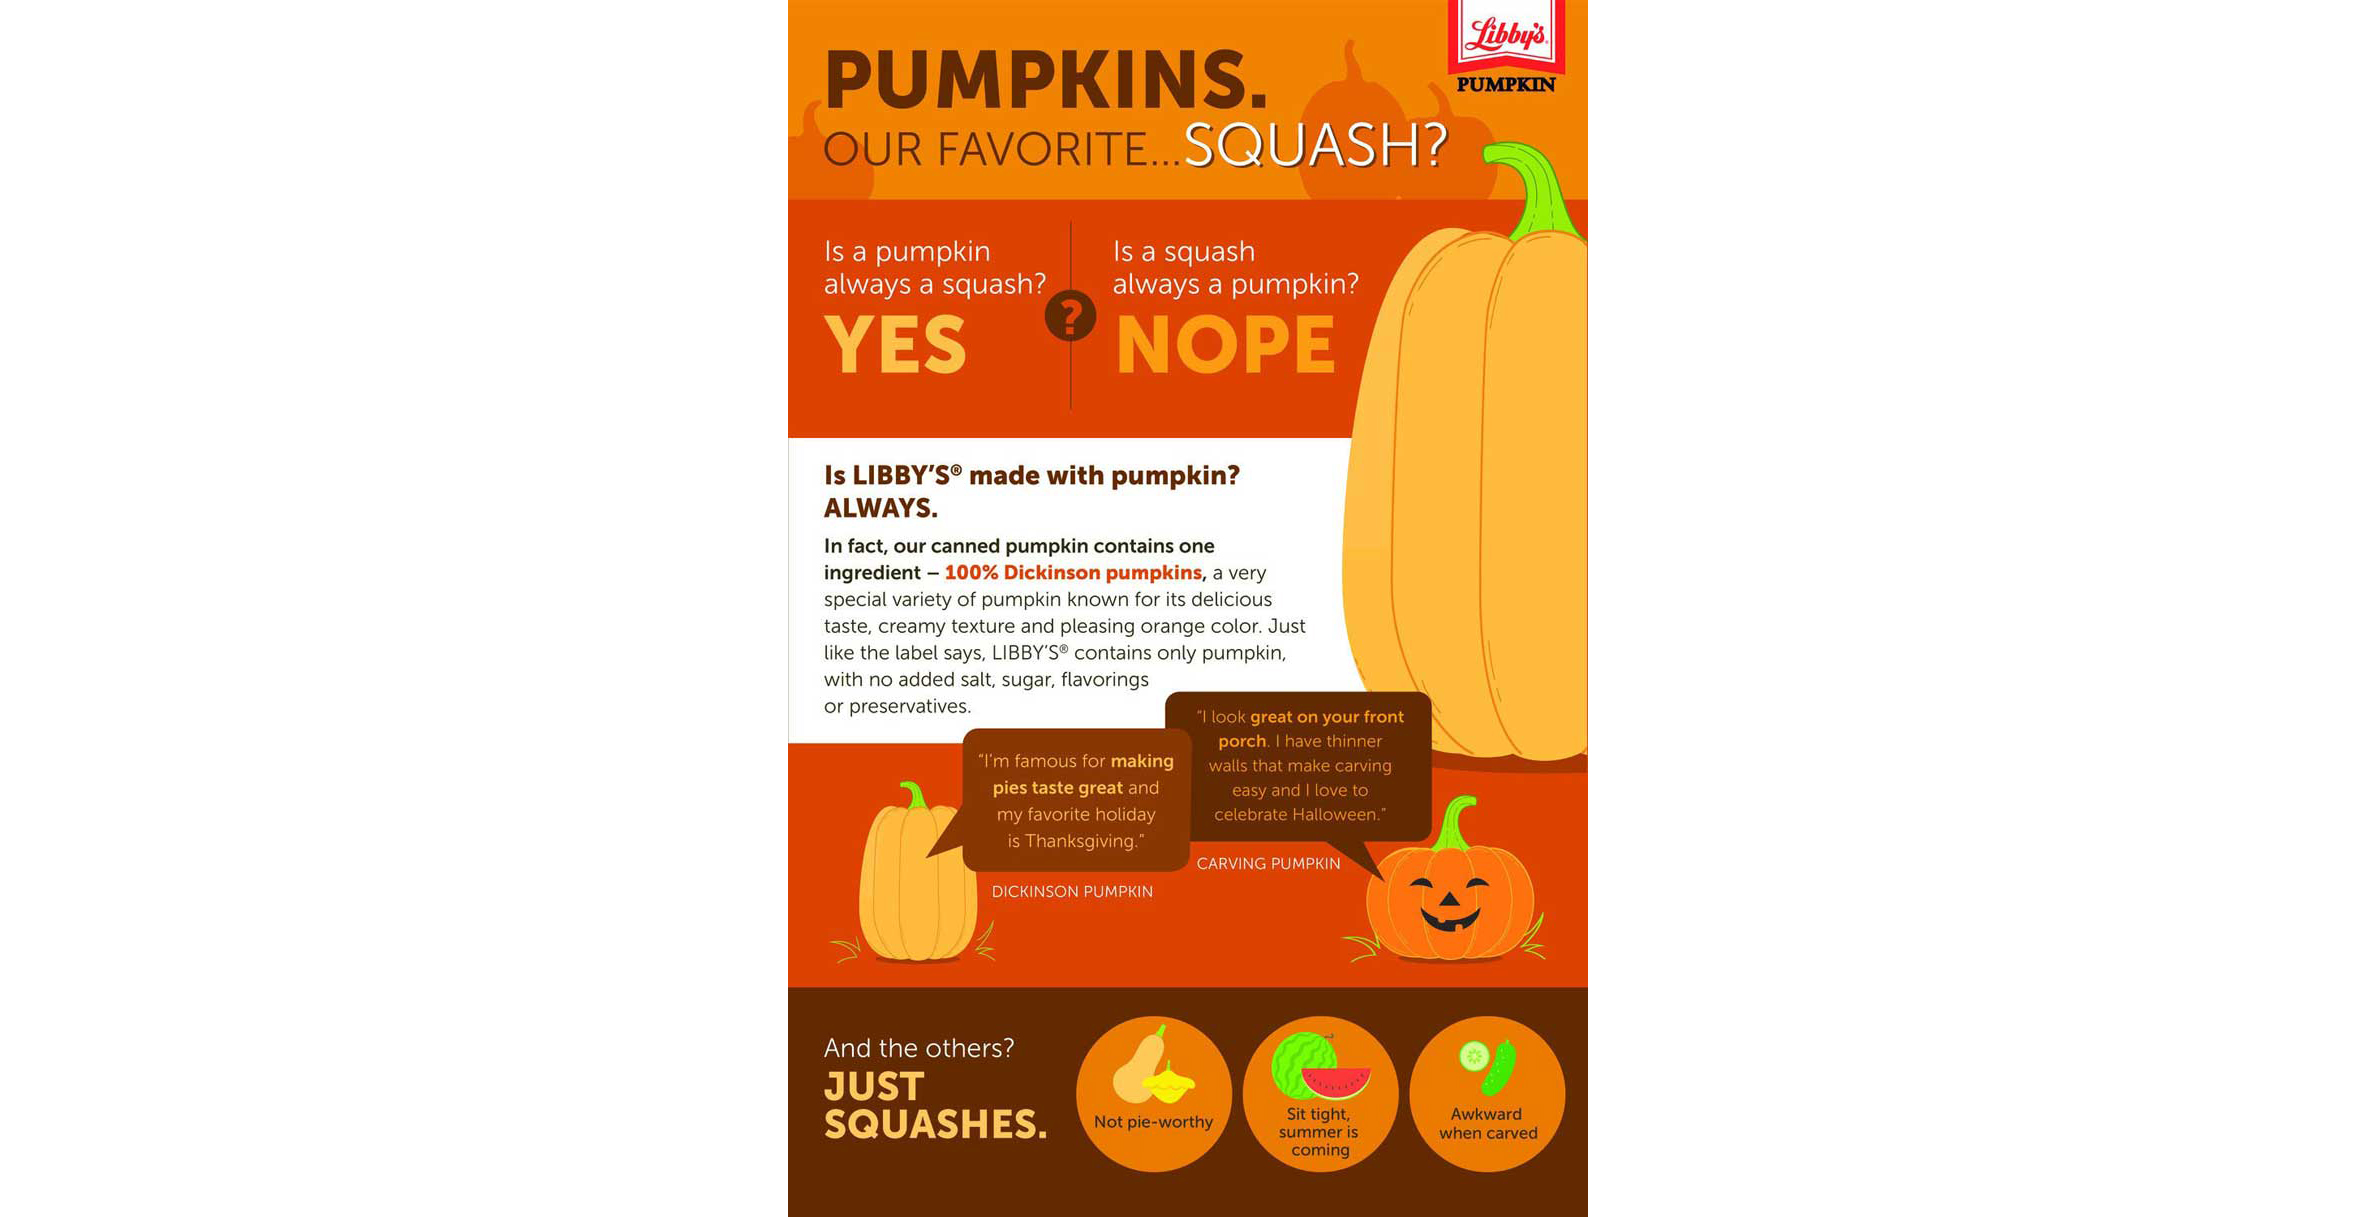 Pure pumpkin infographic